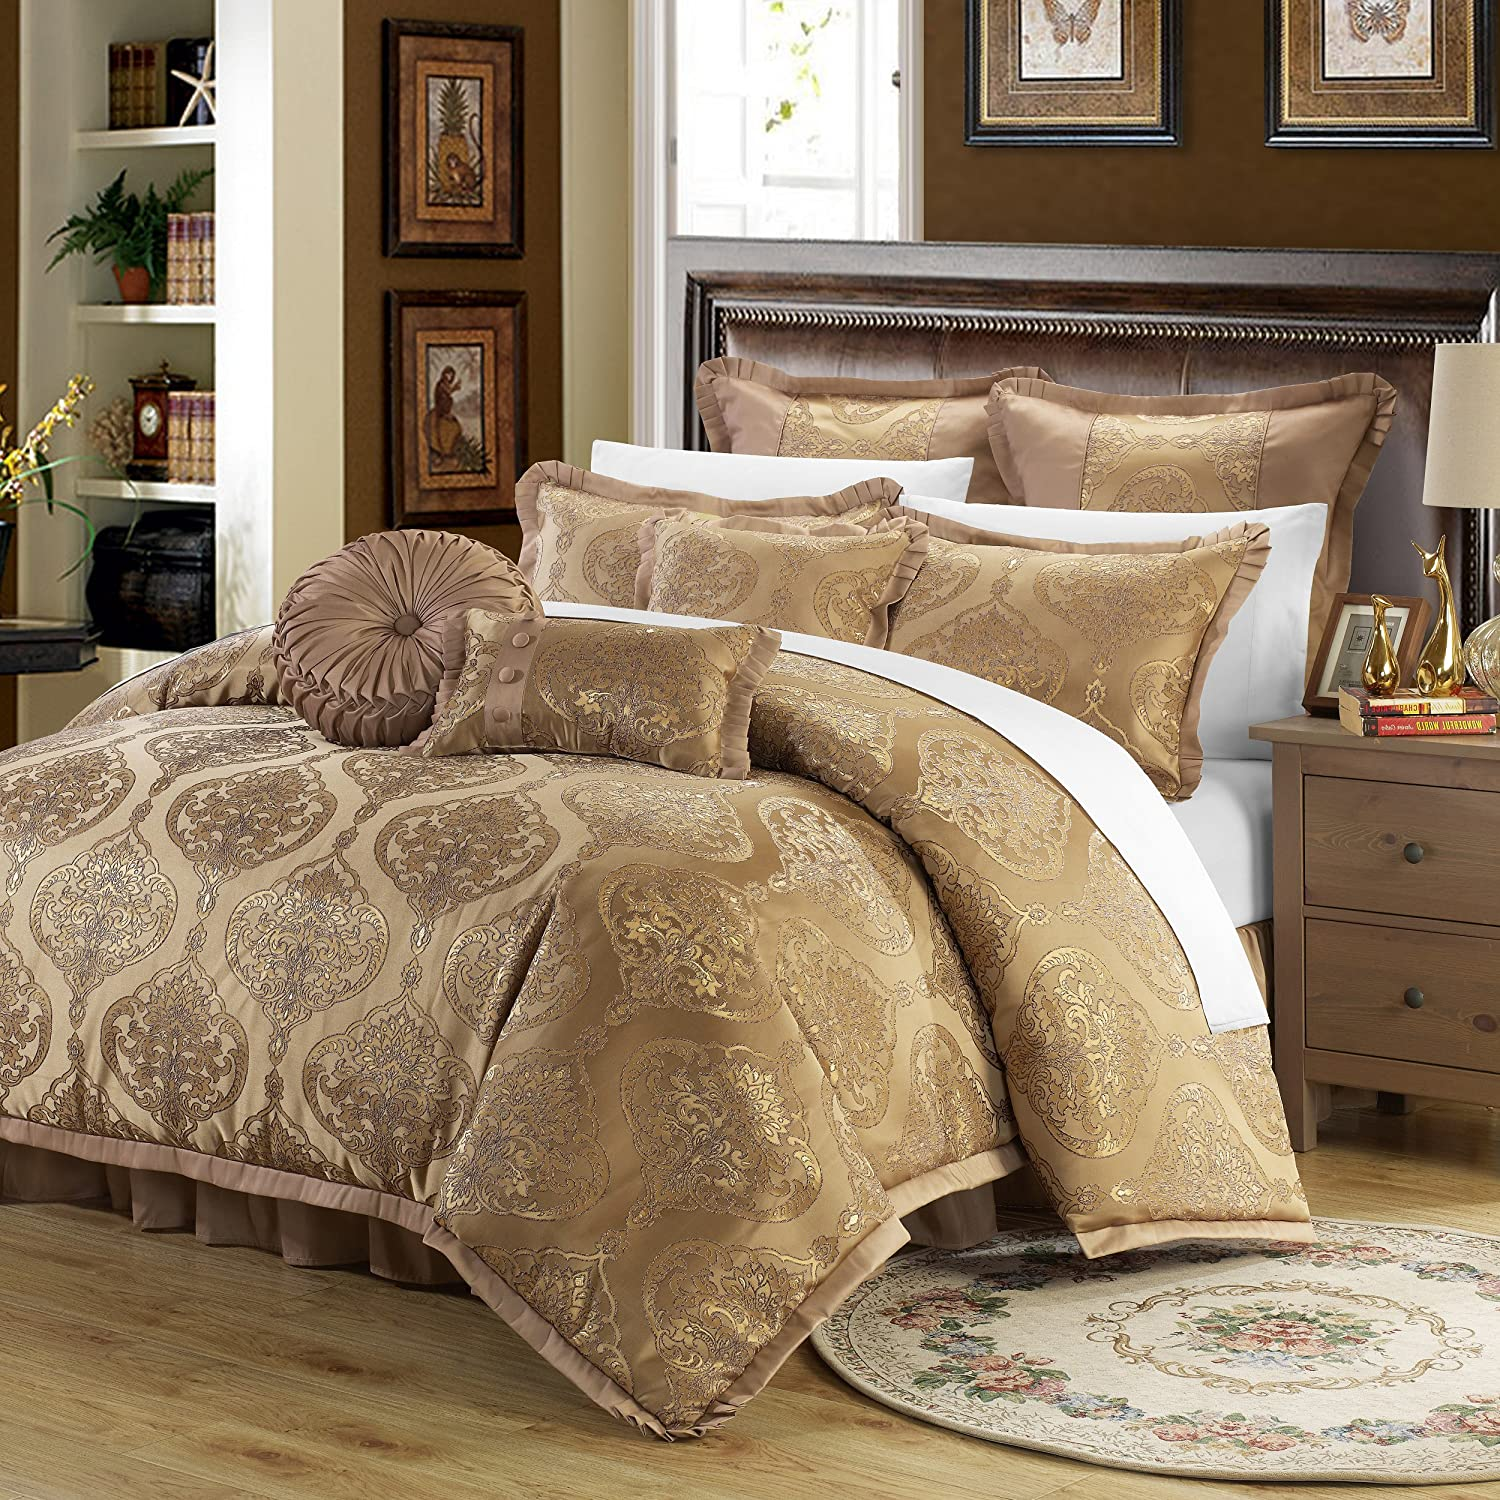 Perfect Home 9 Piece Bonito Decorator Upholstery Quality Jacquard Motif  Fabric Complete Master Bedroom Comforter Set and pillows Ensemble. Queen,  Gold